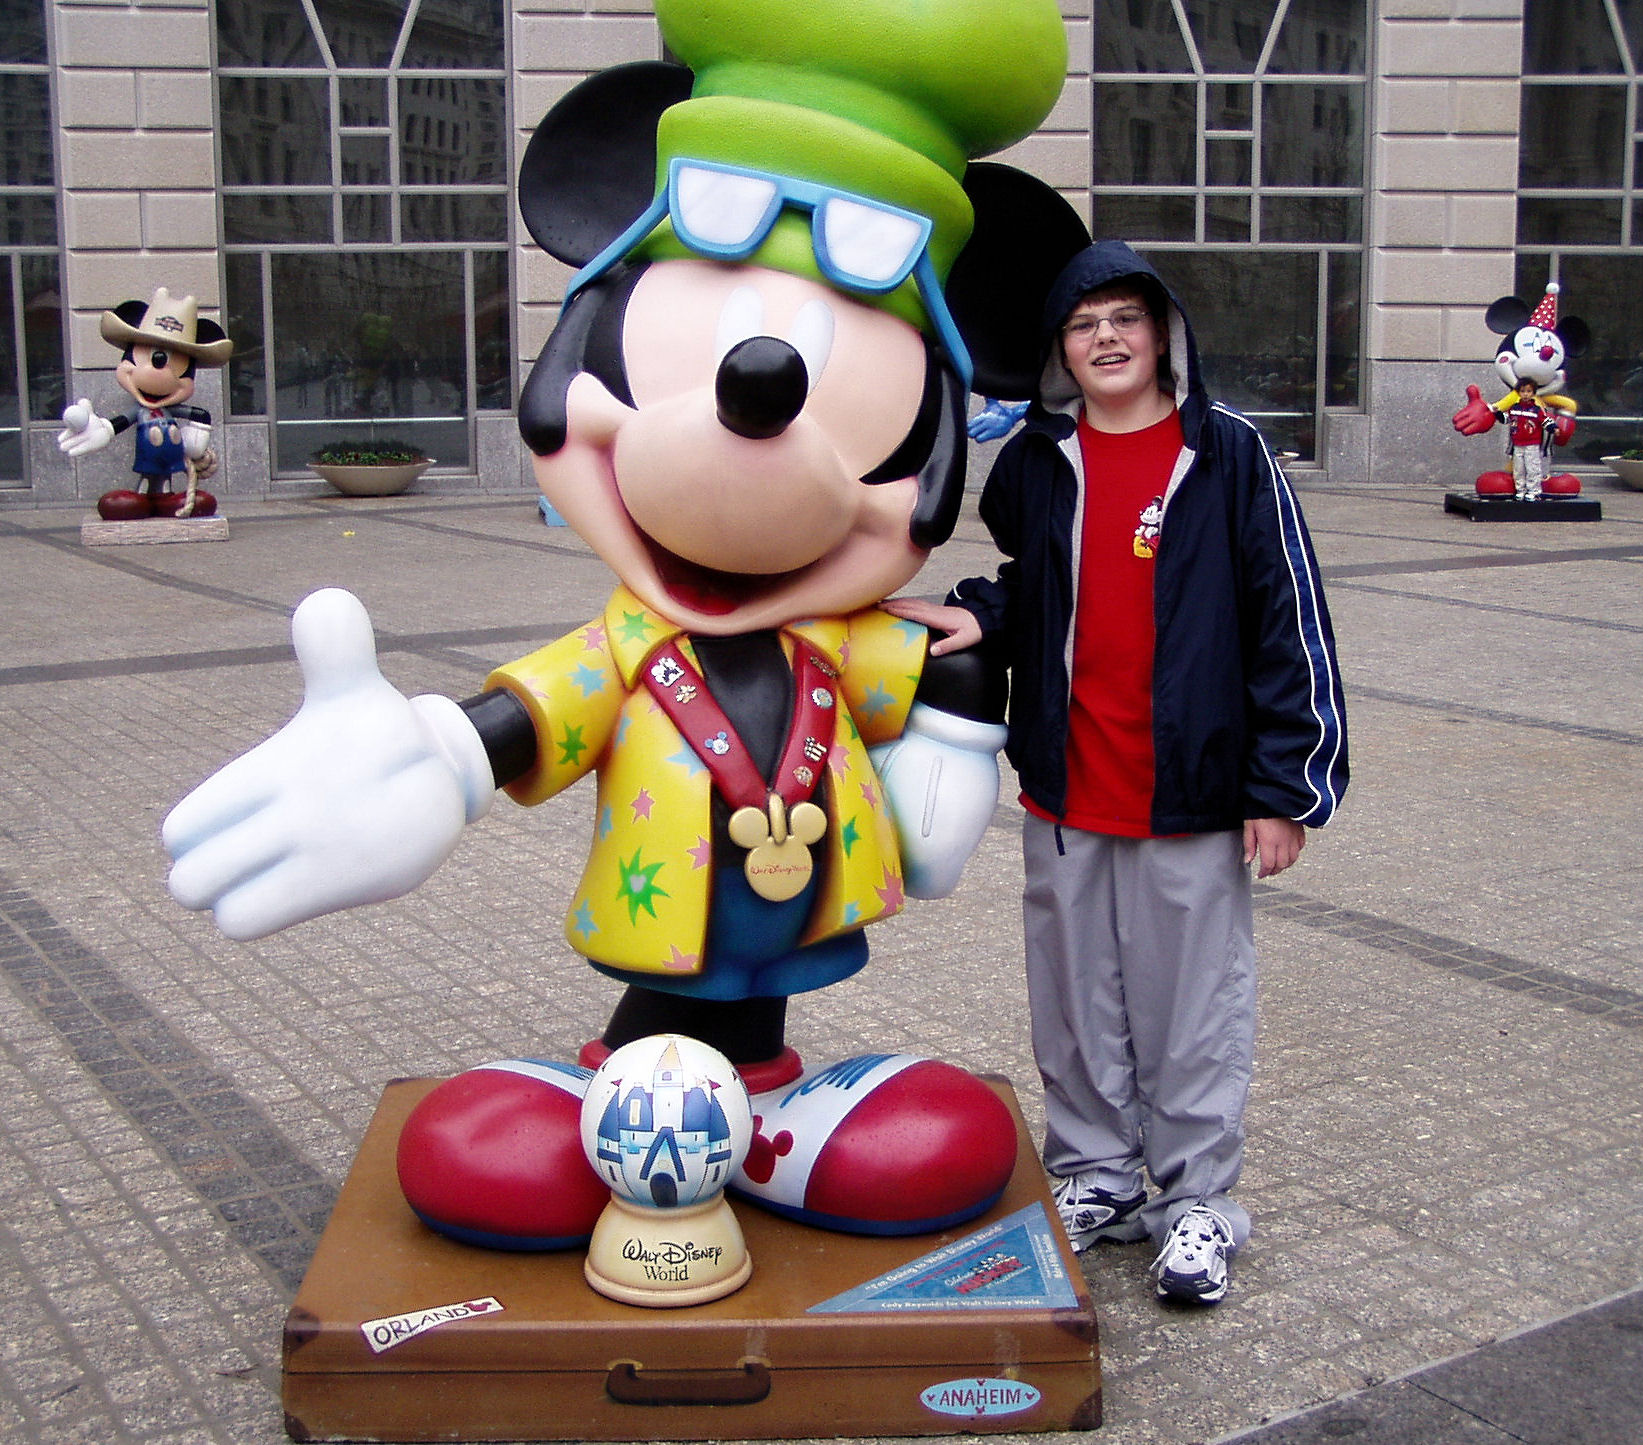 Me standing next to another one of the Mickey statues with two more in the background.  All of the Mickey statues, after touring around the country in groups, all came together at Washington D.C.